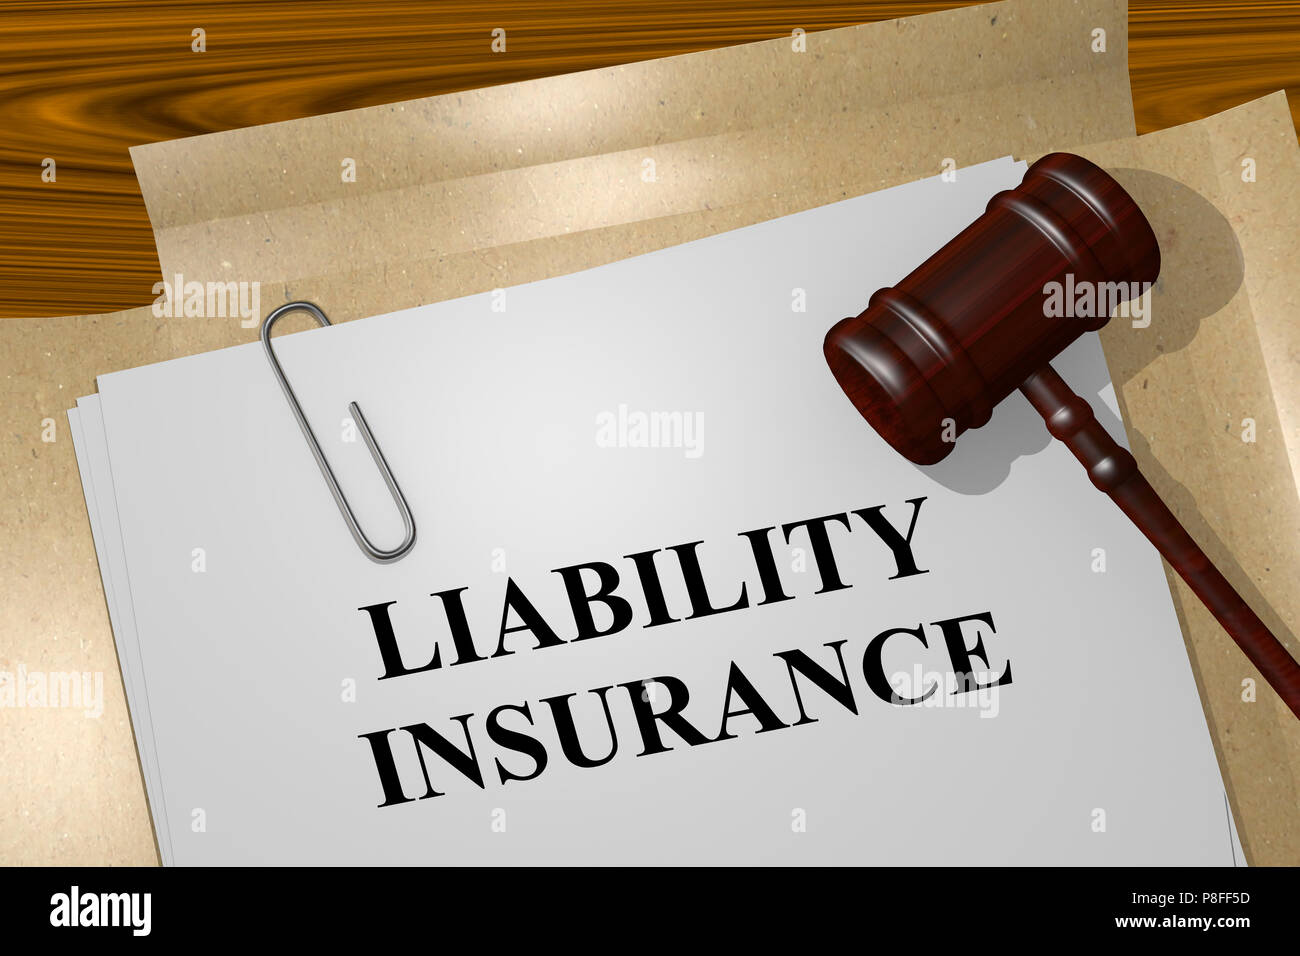 3D illustration of LIABILITY INSURANCE title on legal document - Stock Image